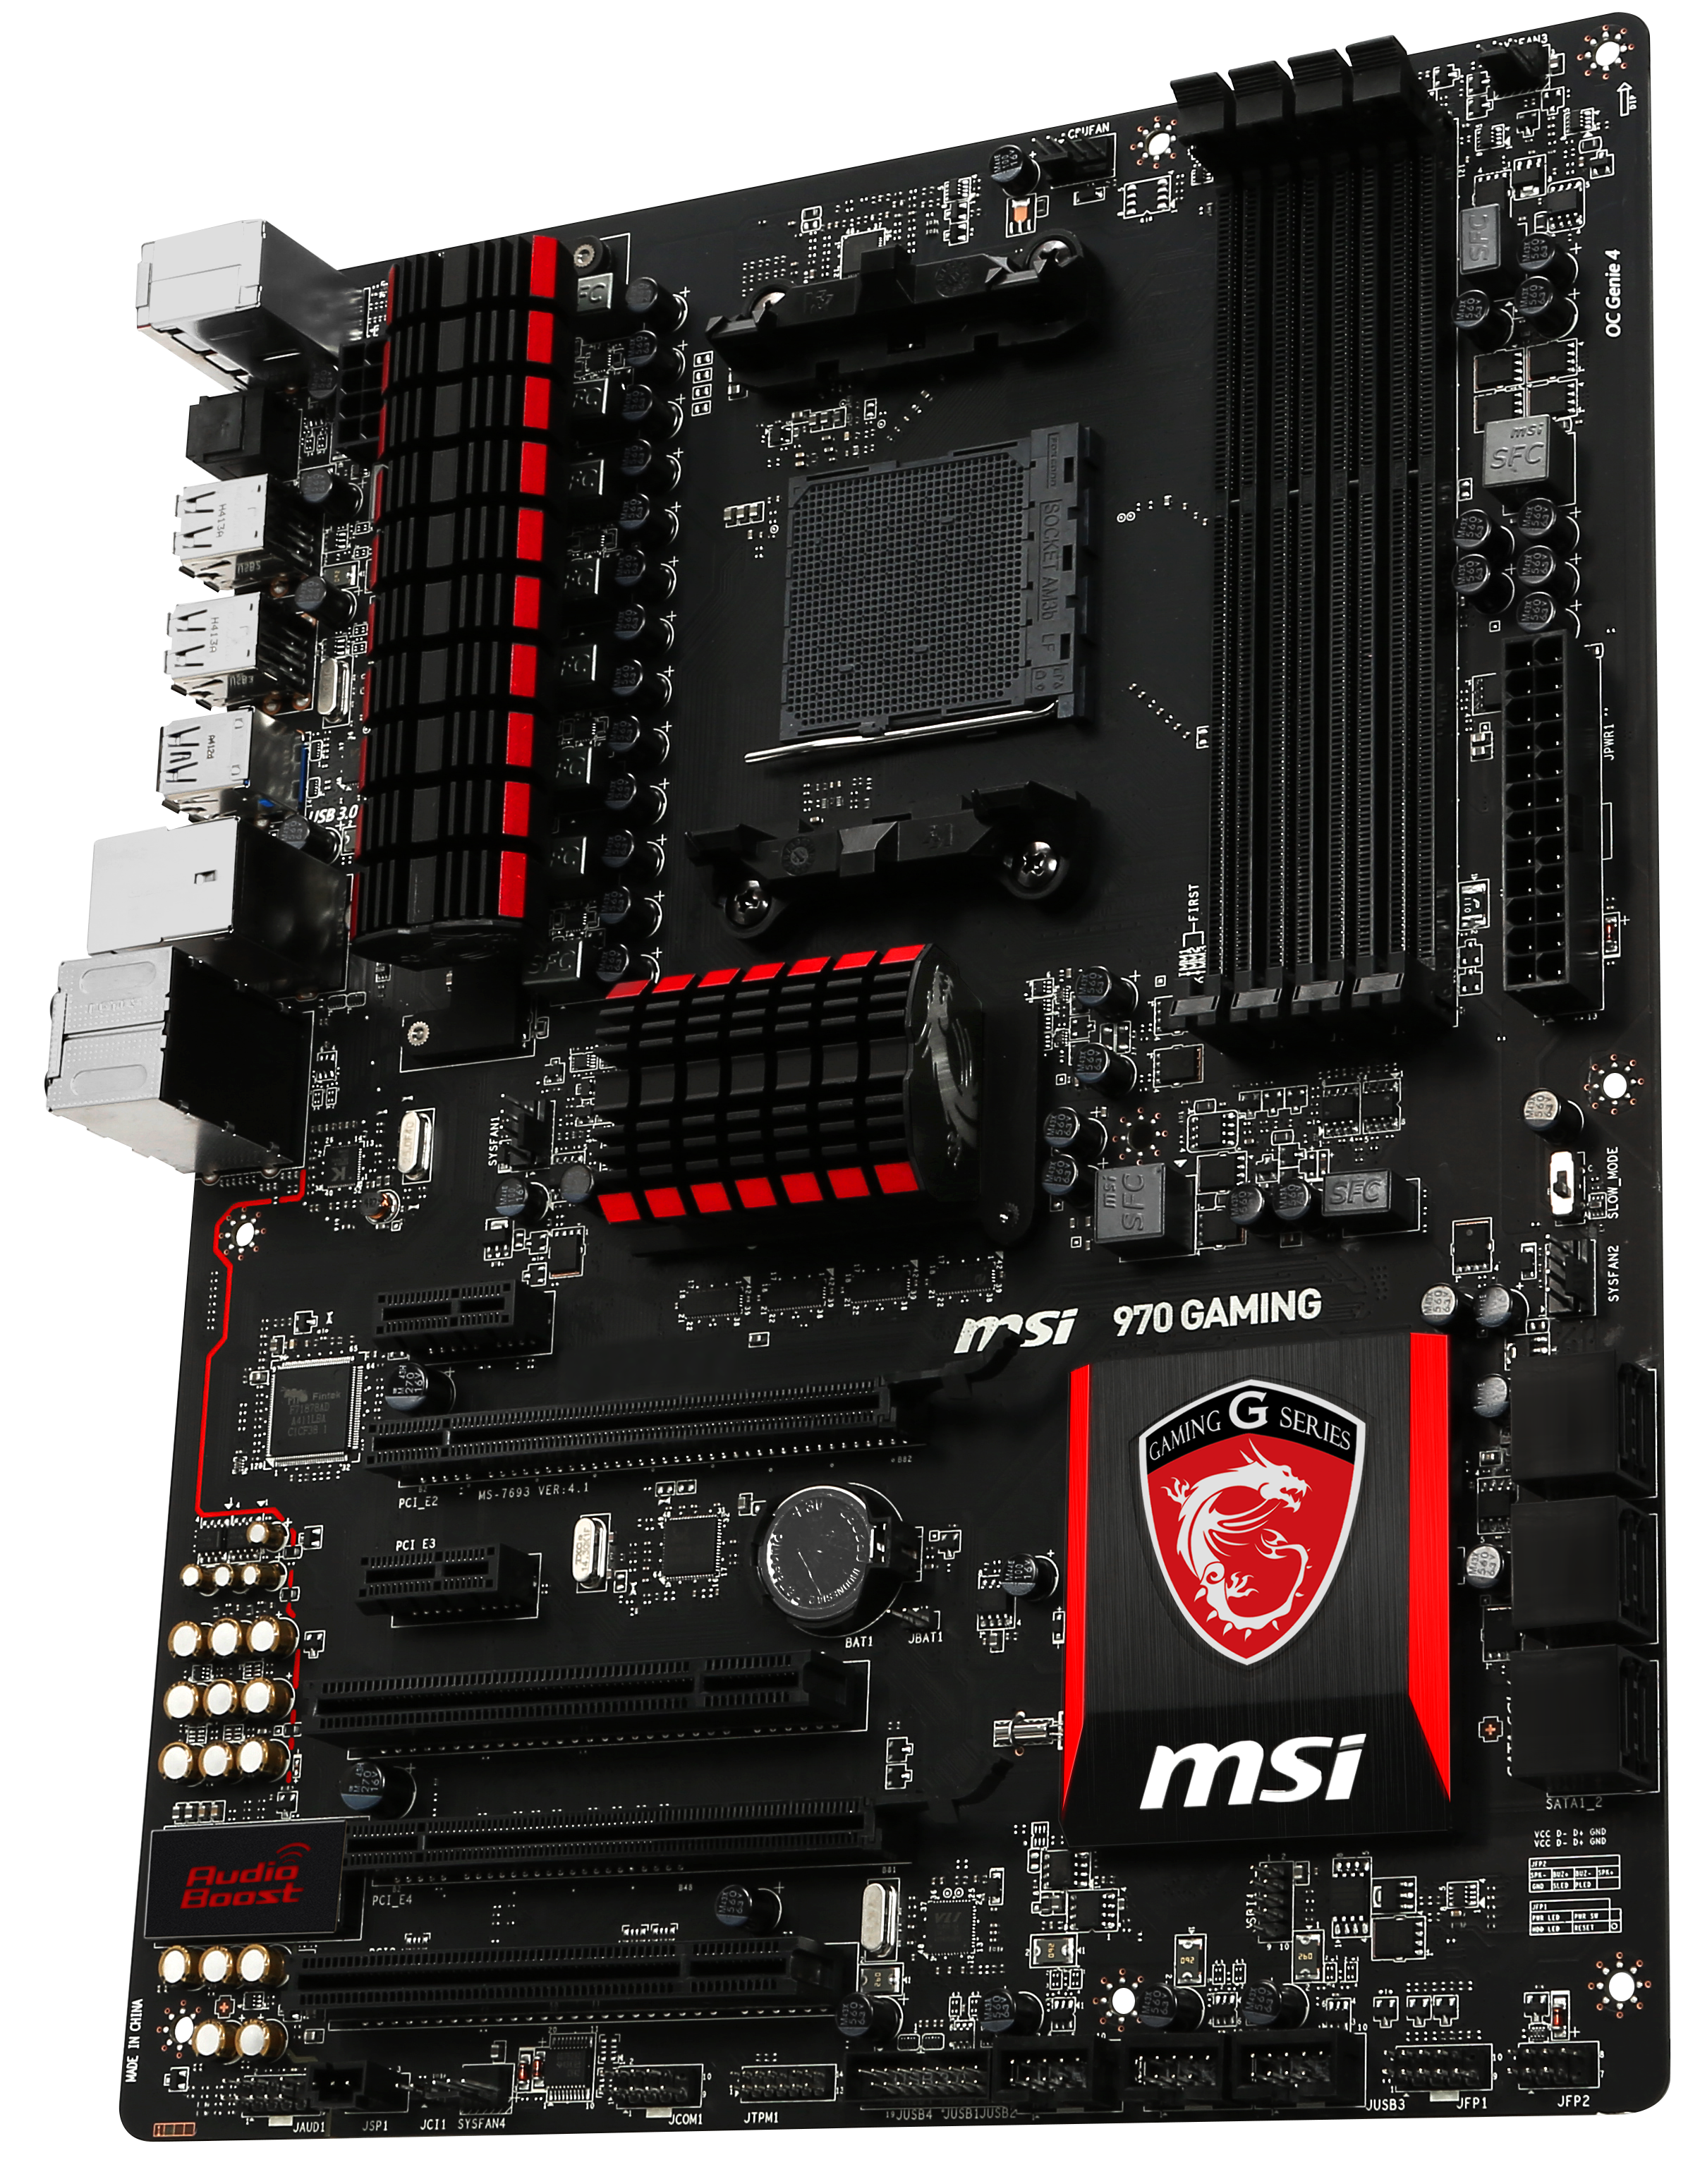 MSI Drivers Download for Windows 10 8 7 XP Vista